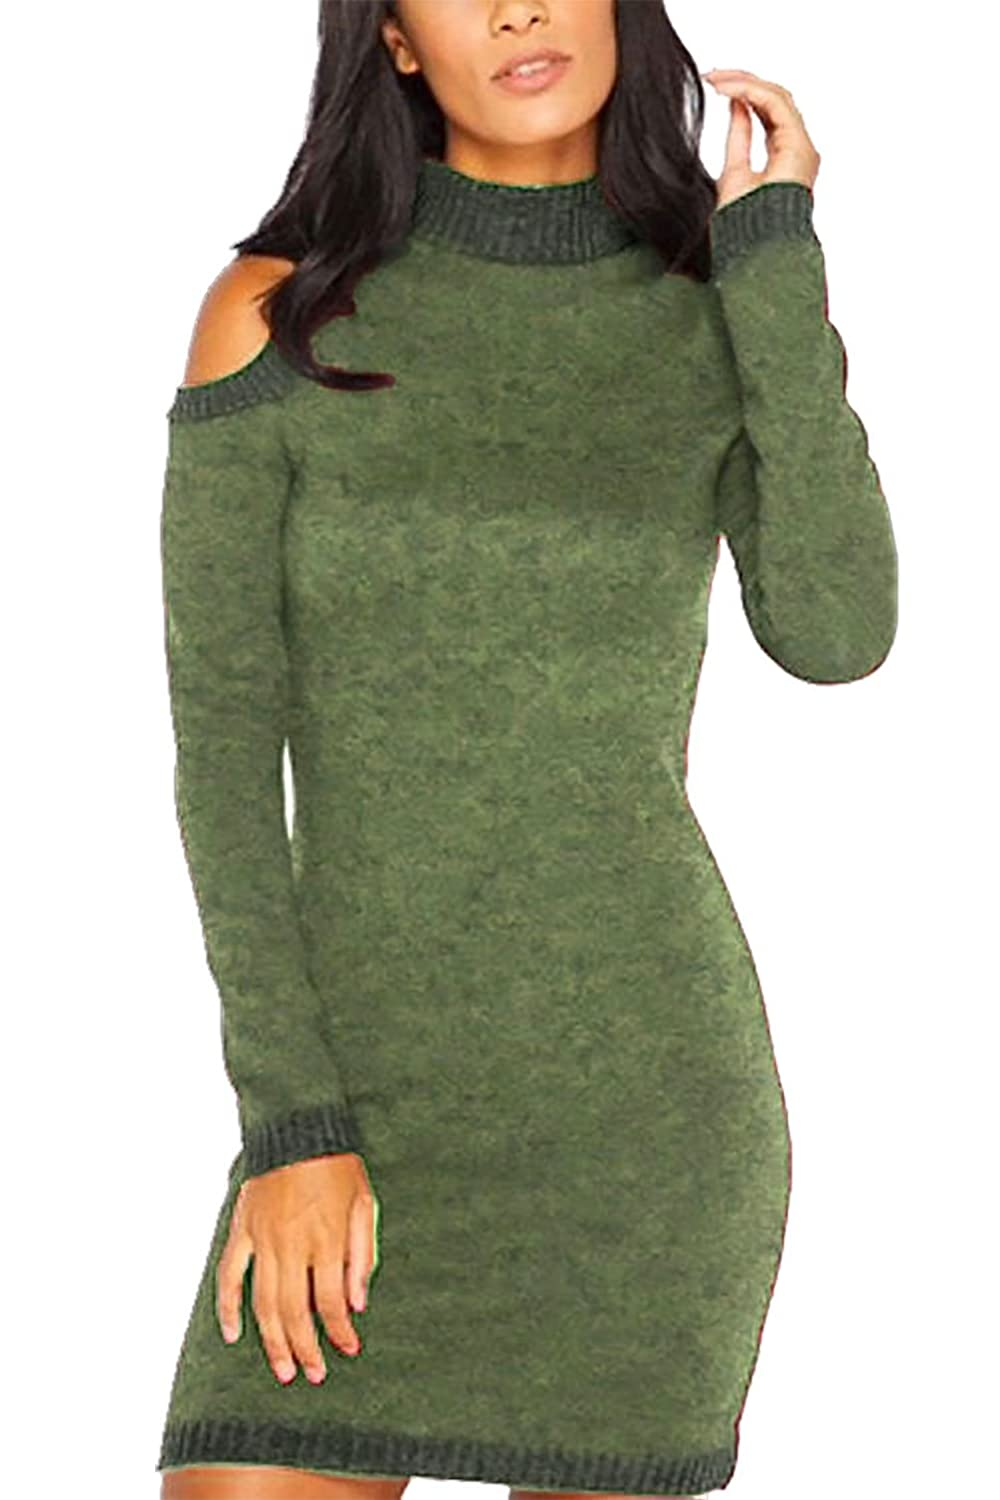 RIDDLEDWITHSTYLE - Pull - Robe pull - Femme